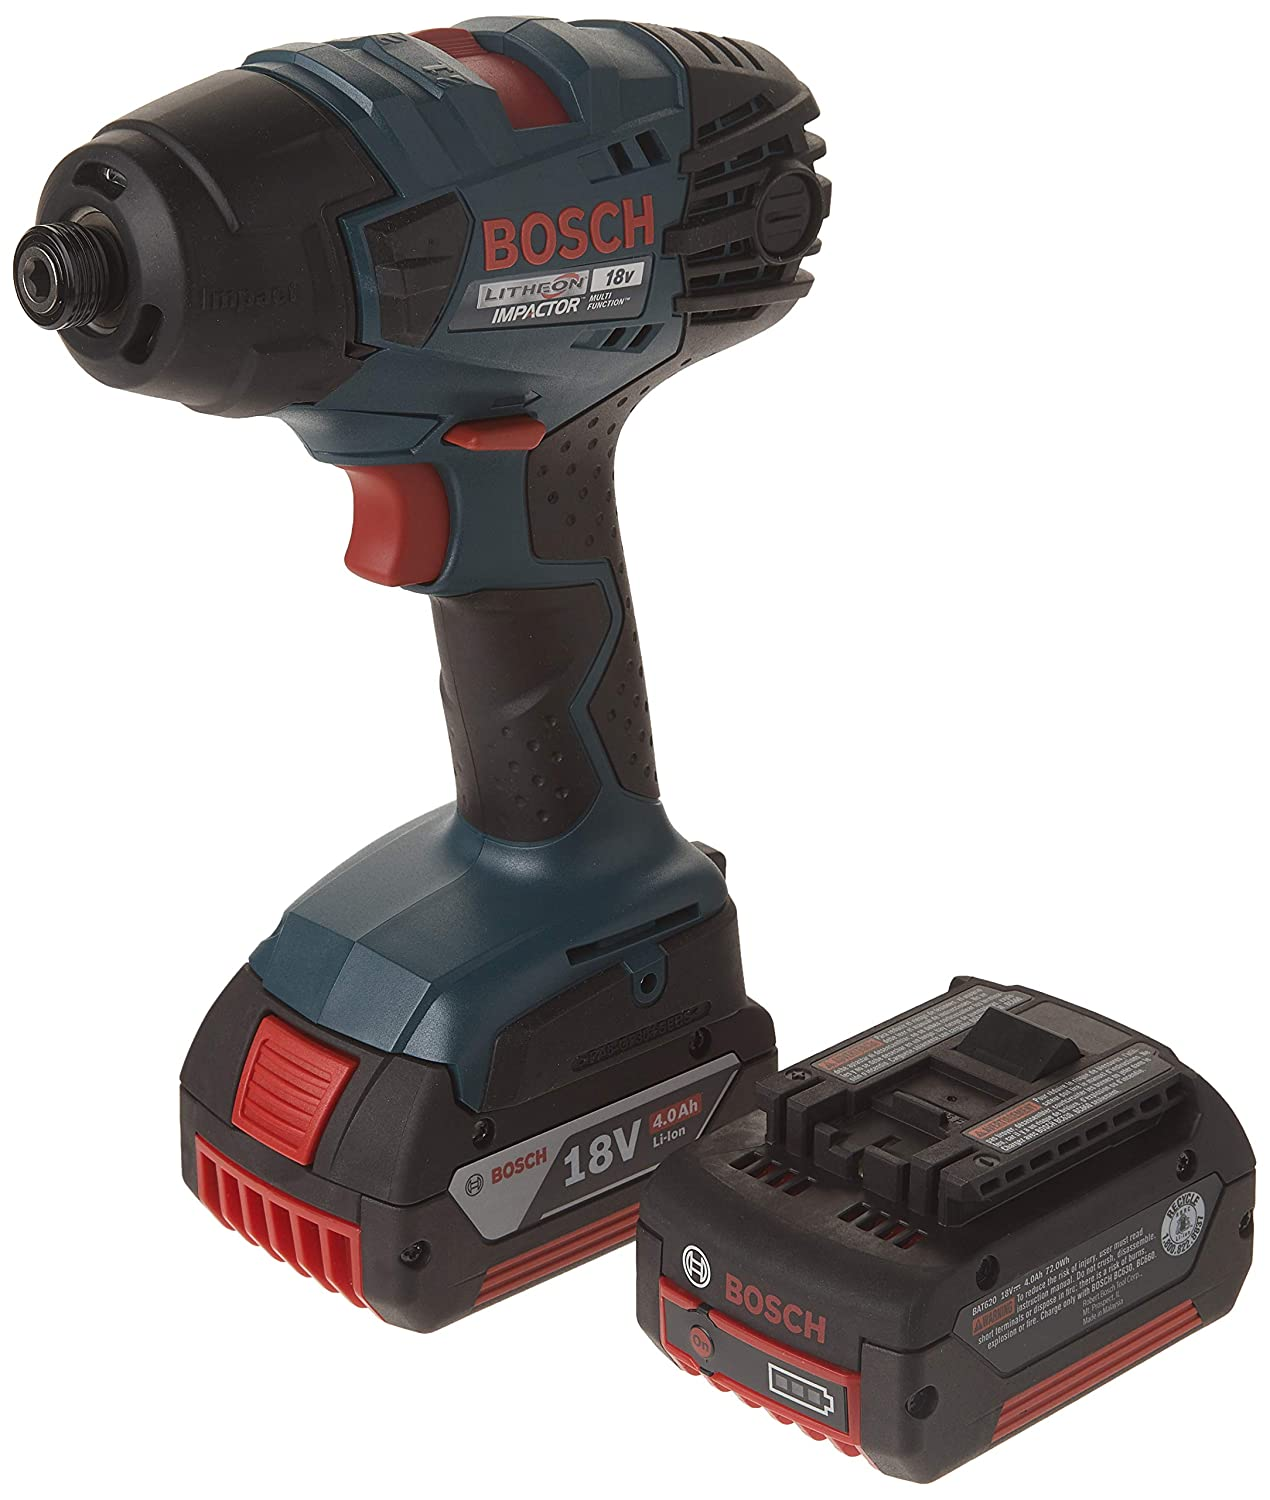 Bosch 26618-01 18-Volt Lithium-Ion 1/4-Hex Impact Drill/Driver Kit with 2 Batteries, Charger and Case